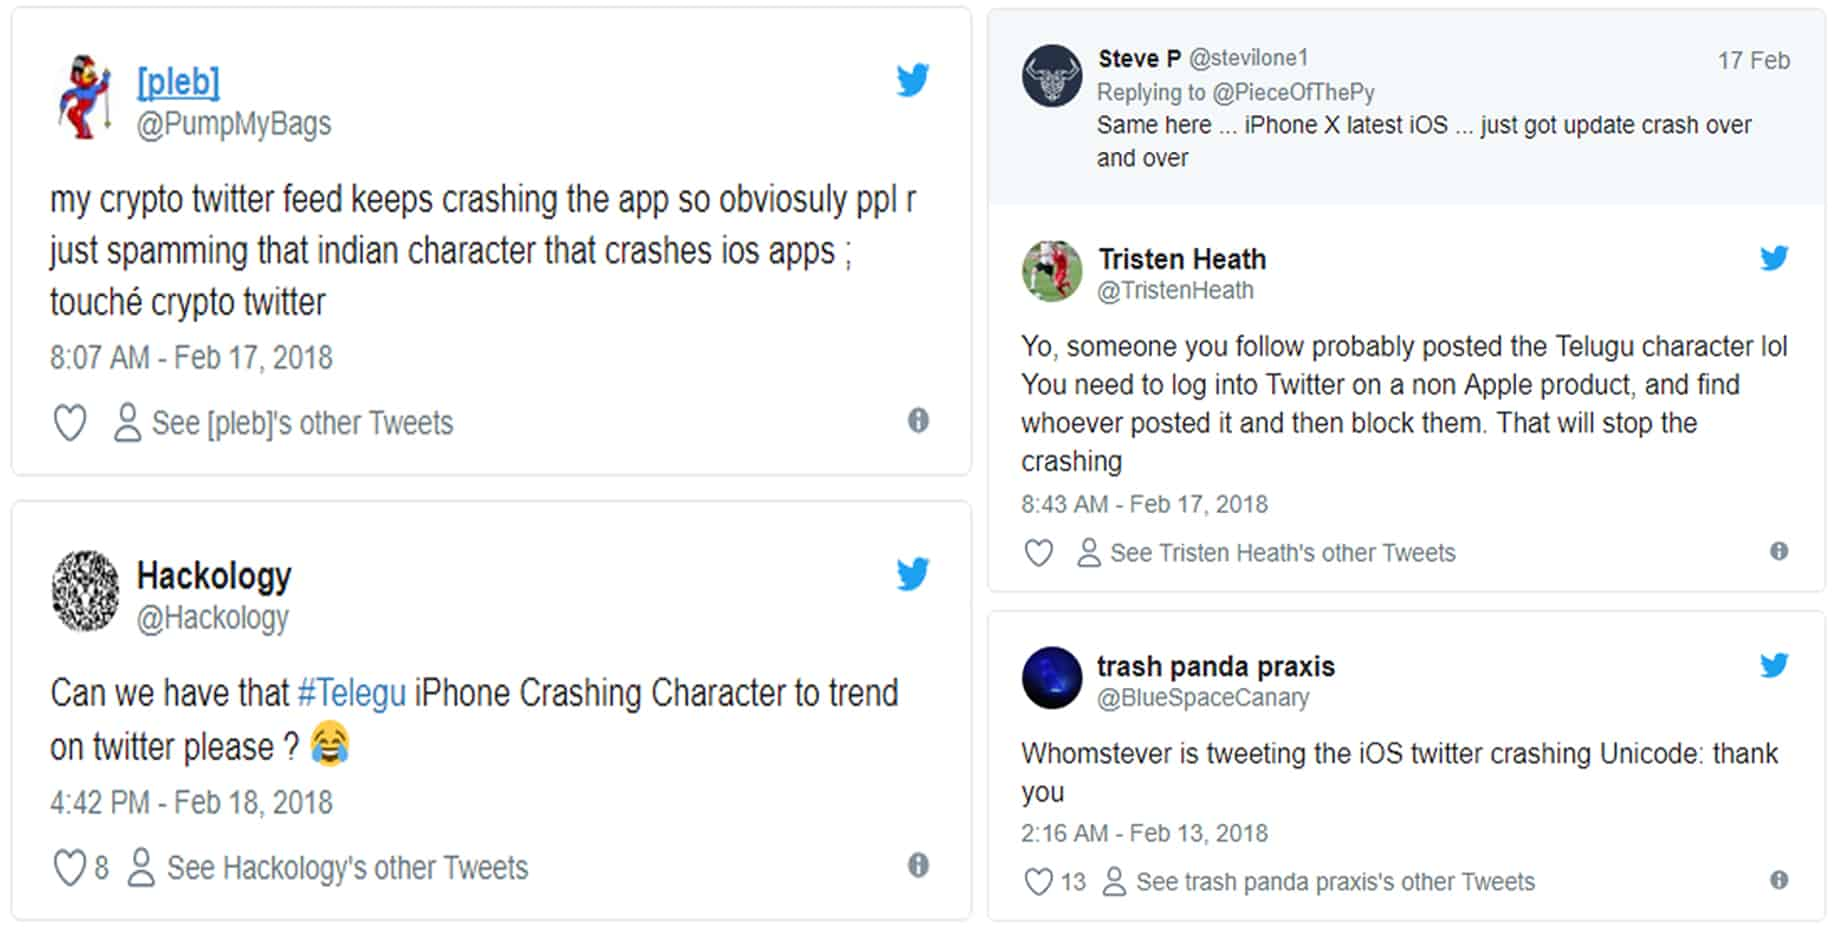 TECHGYO_Trolls in Twitter Have Induced a New Bug causing Repeated Crash in iPhones